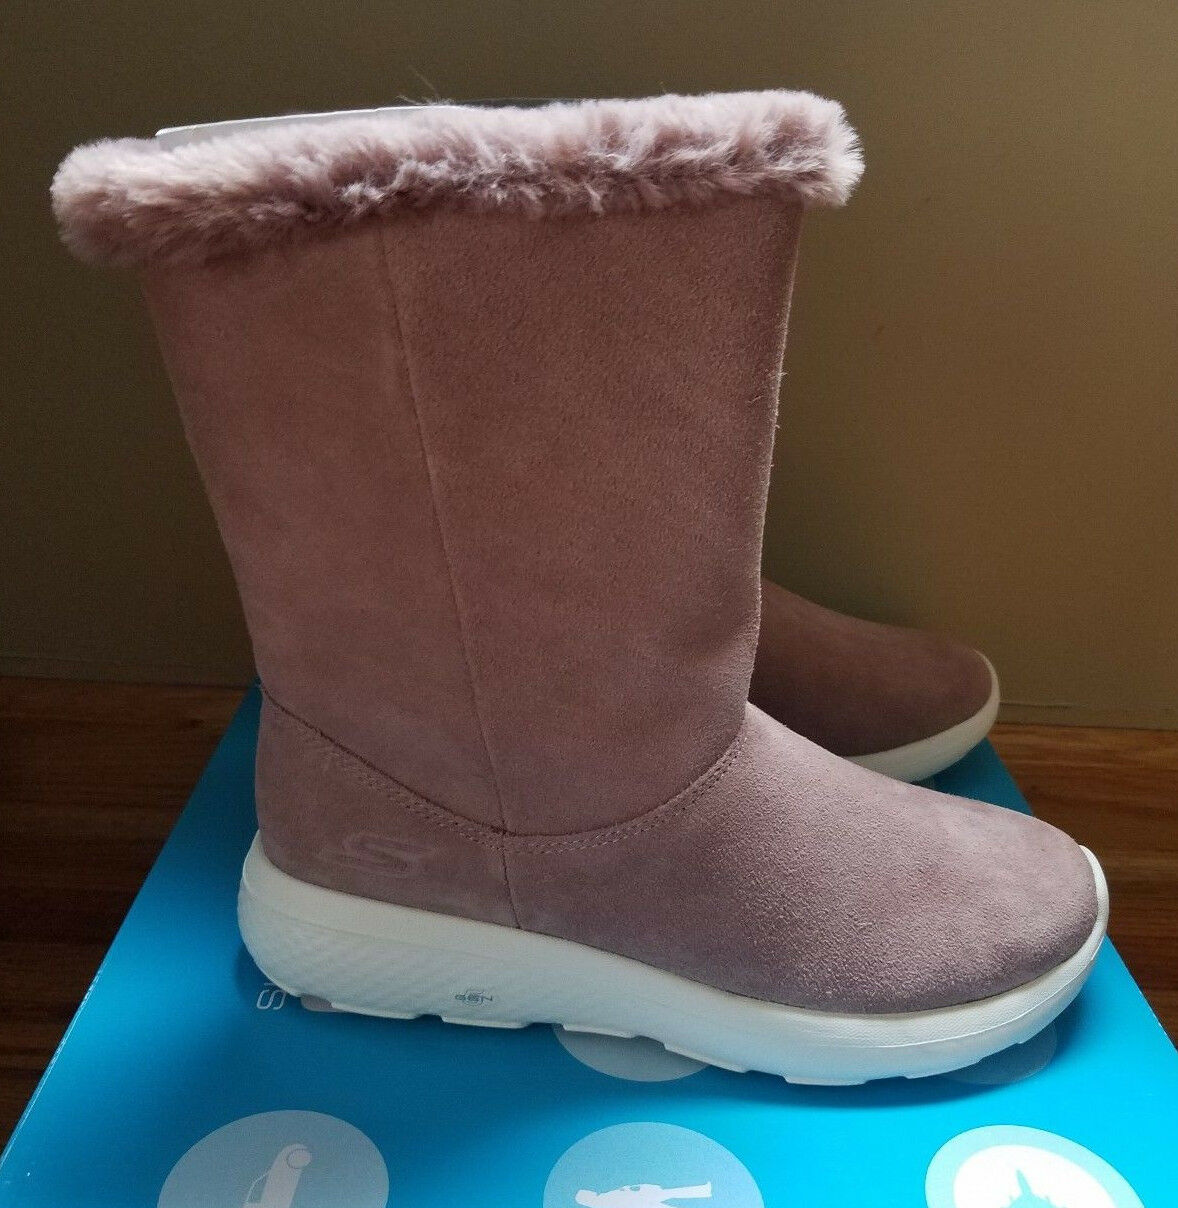 Sketchers On the the the Go City 2 Stiefel in Mauve Größe 6 -New in Box 998881